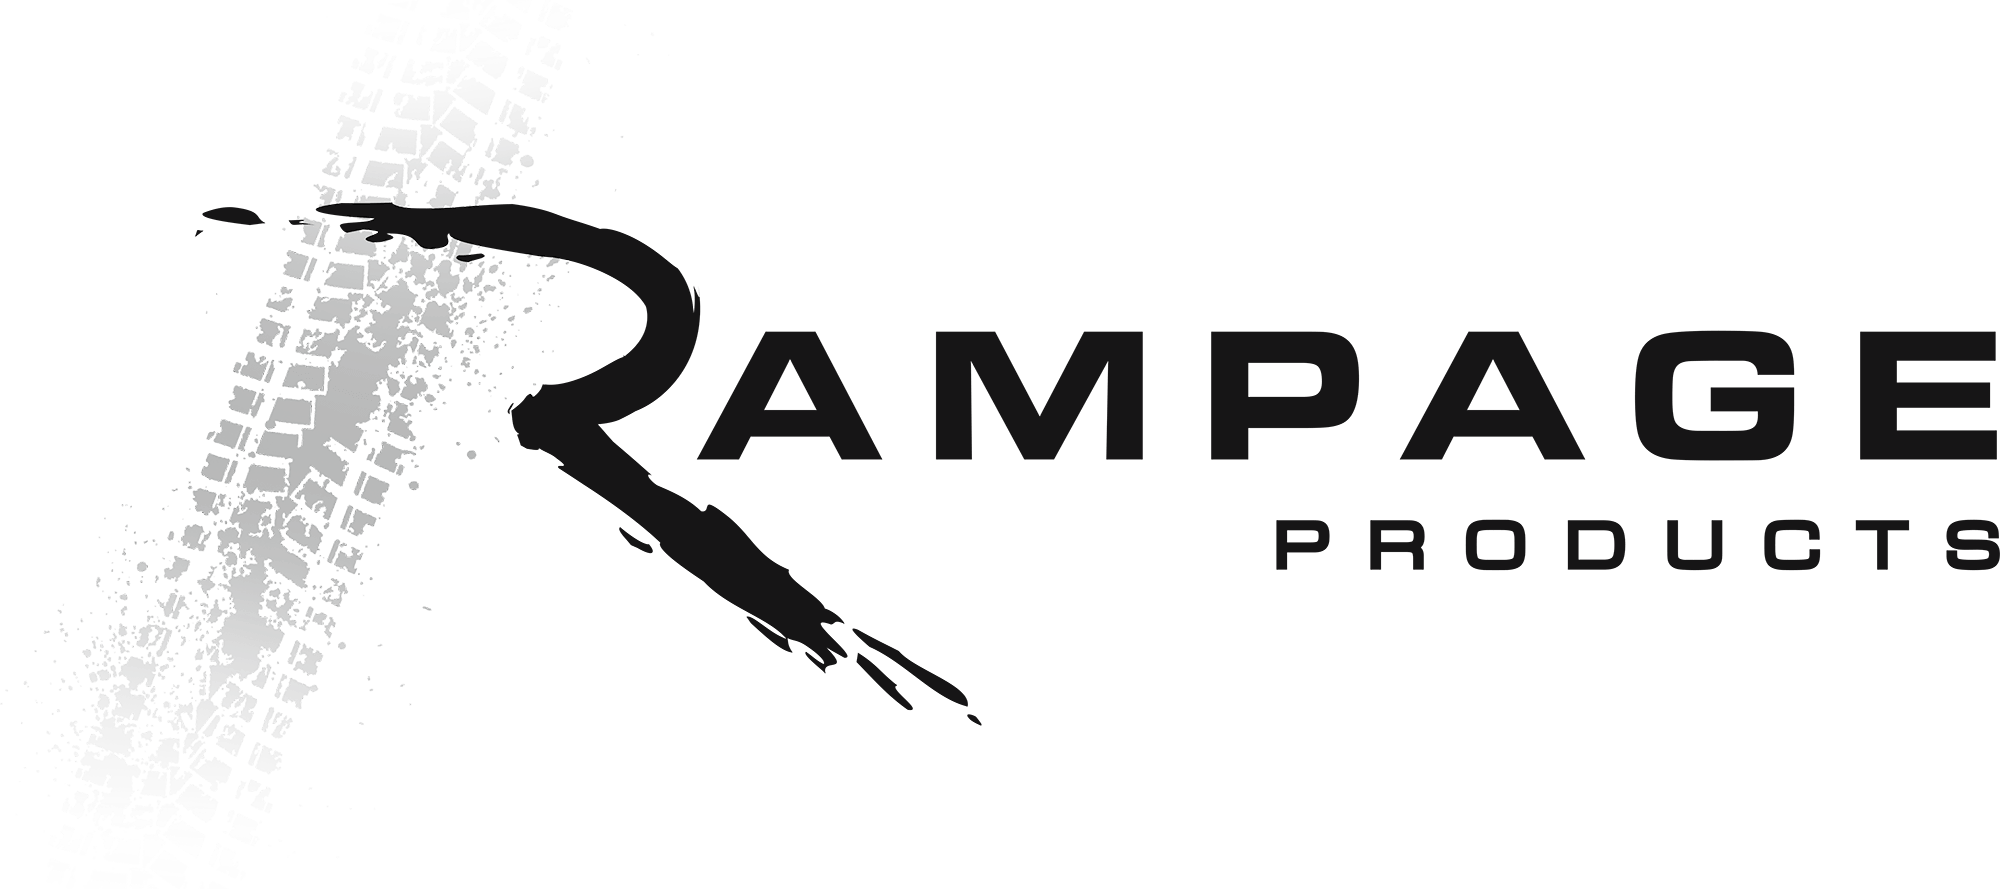 Jeep wrangler logo png. Rampage products soft top